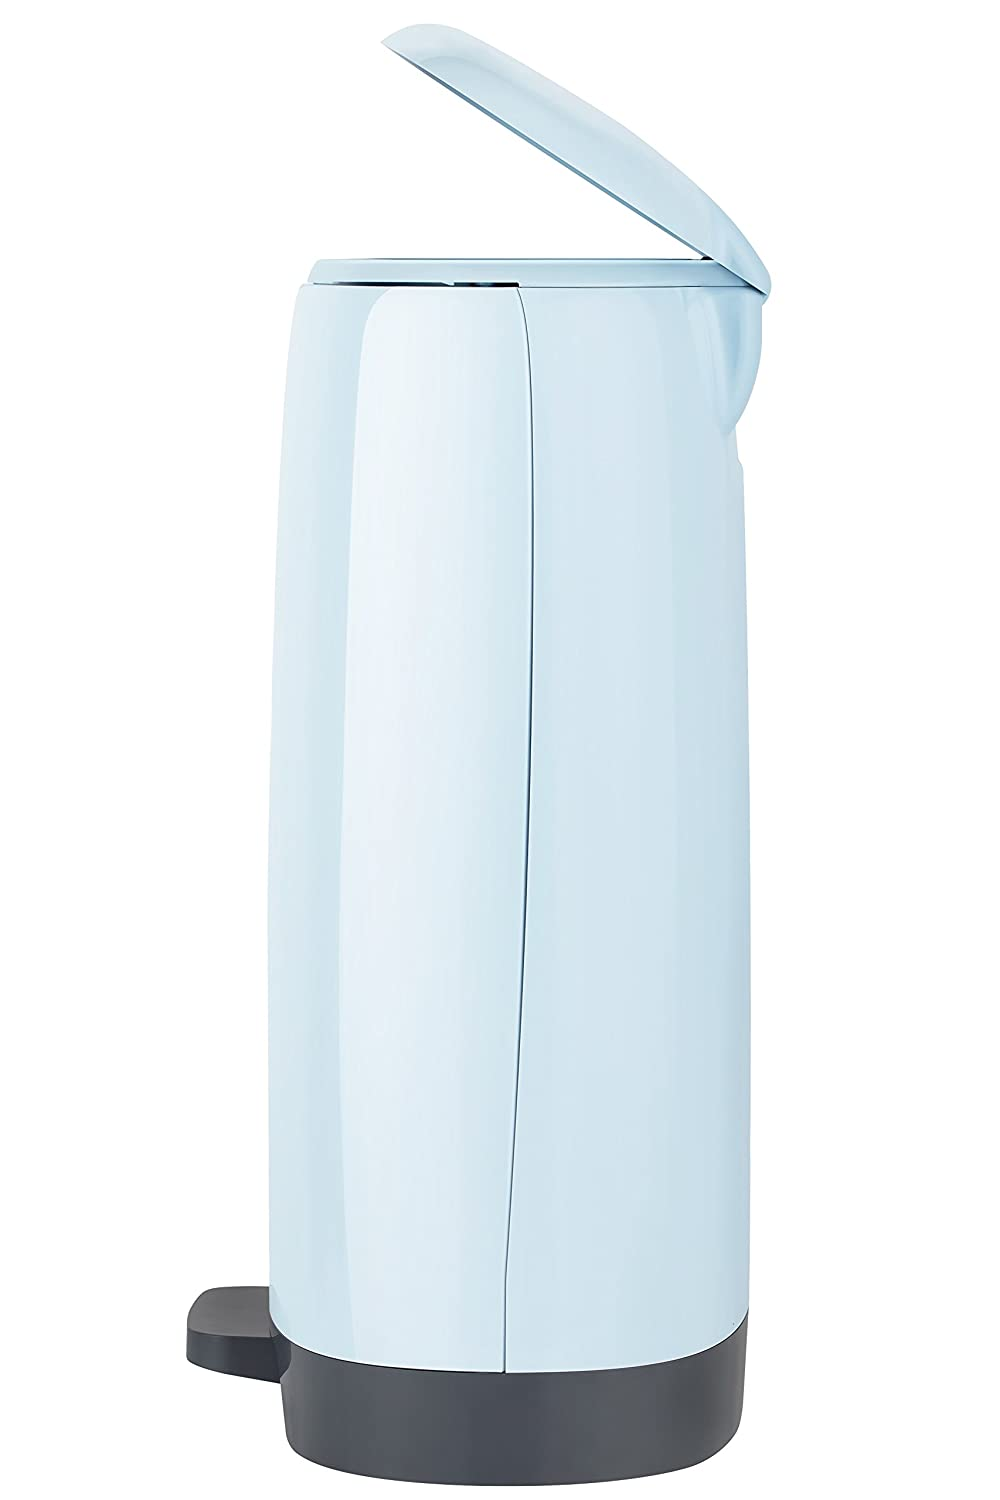 1125 Diaper Count Vliba Diaper Pail - Free Bags Includes up to 6 Months Supply of Refill Bags Baby Blue